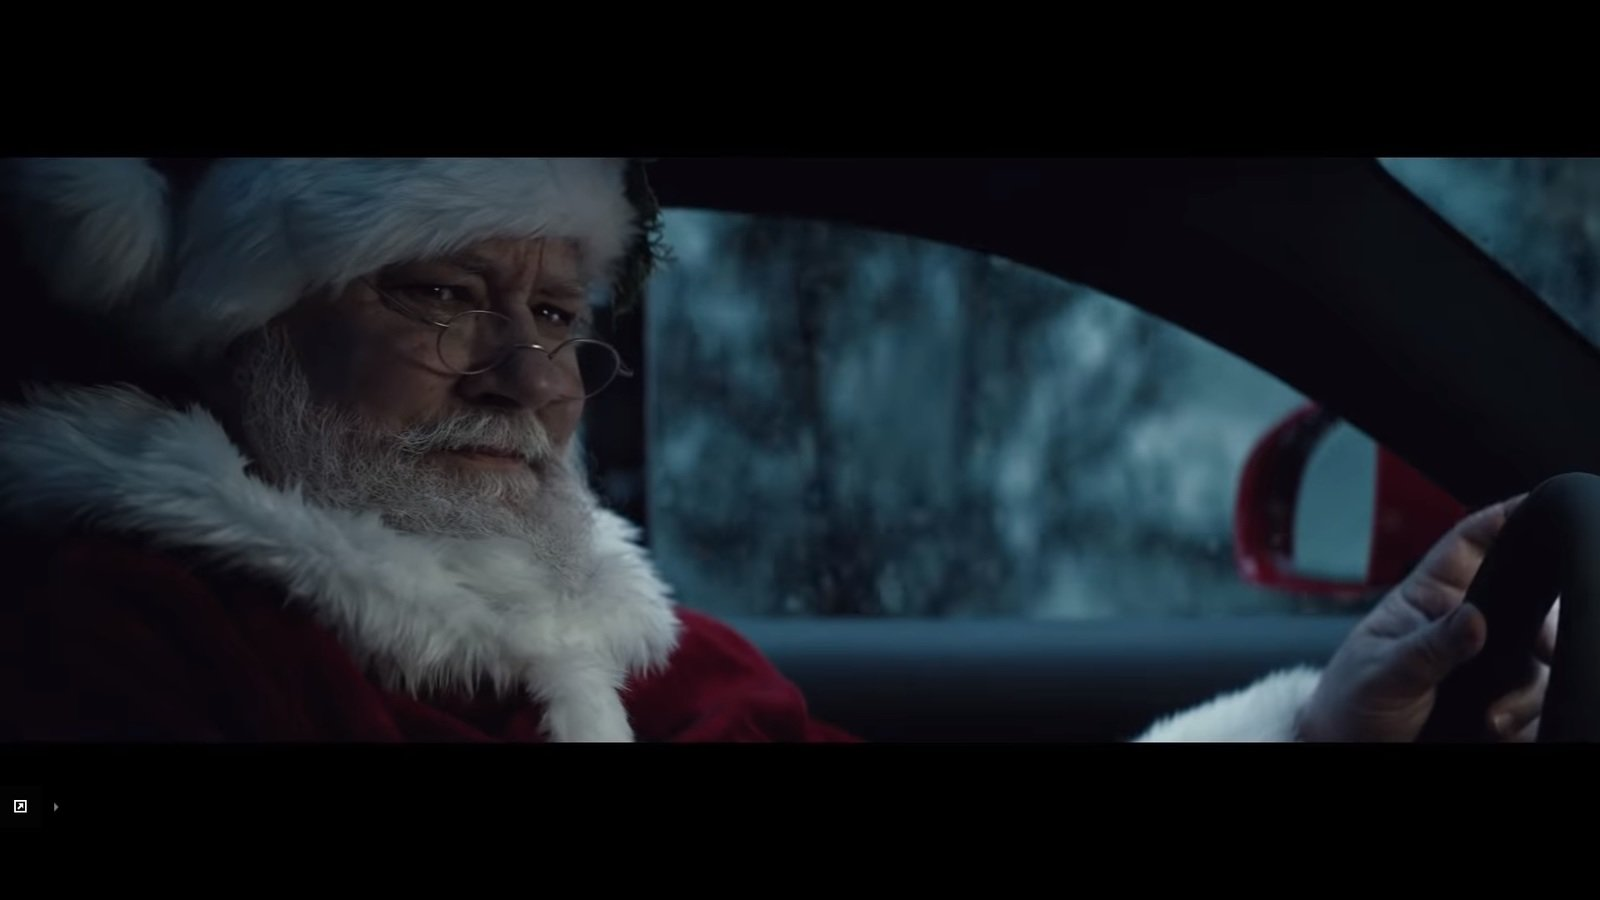 BMW E39 M5 >> Can New Mercedes-Benz Commercial With Santa Make You Lease ...